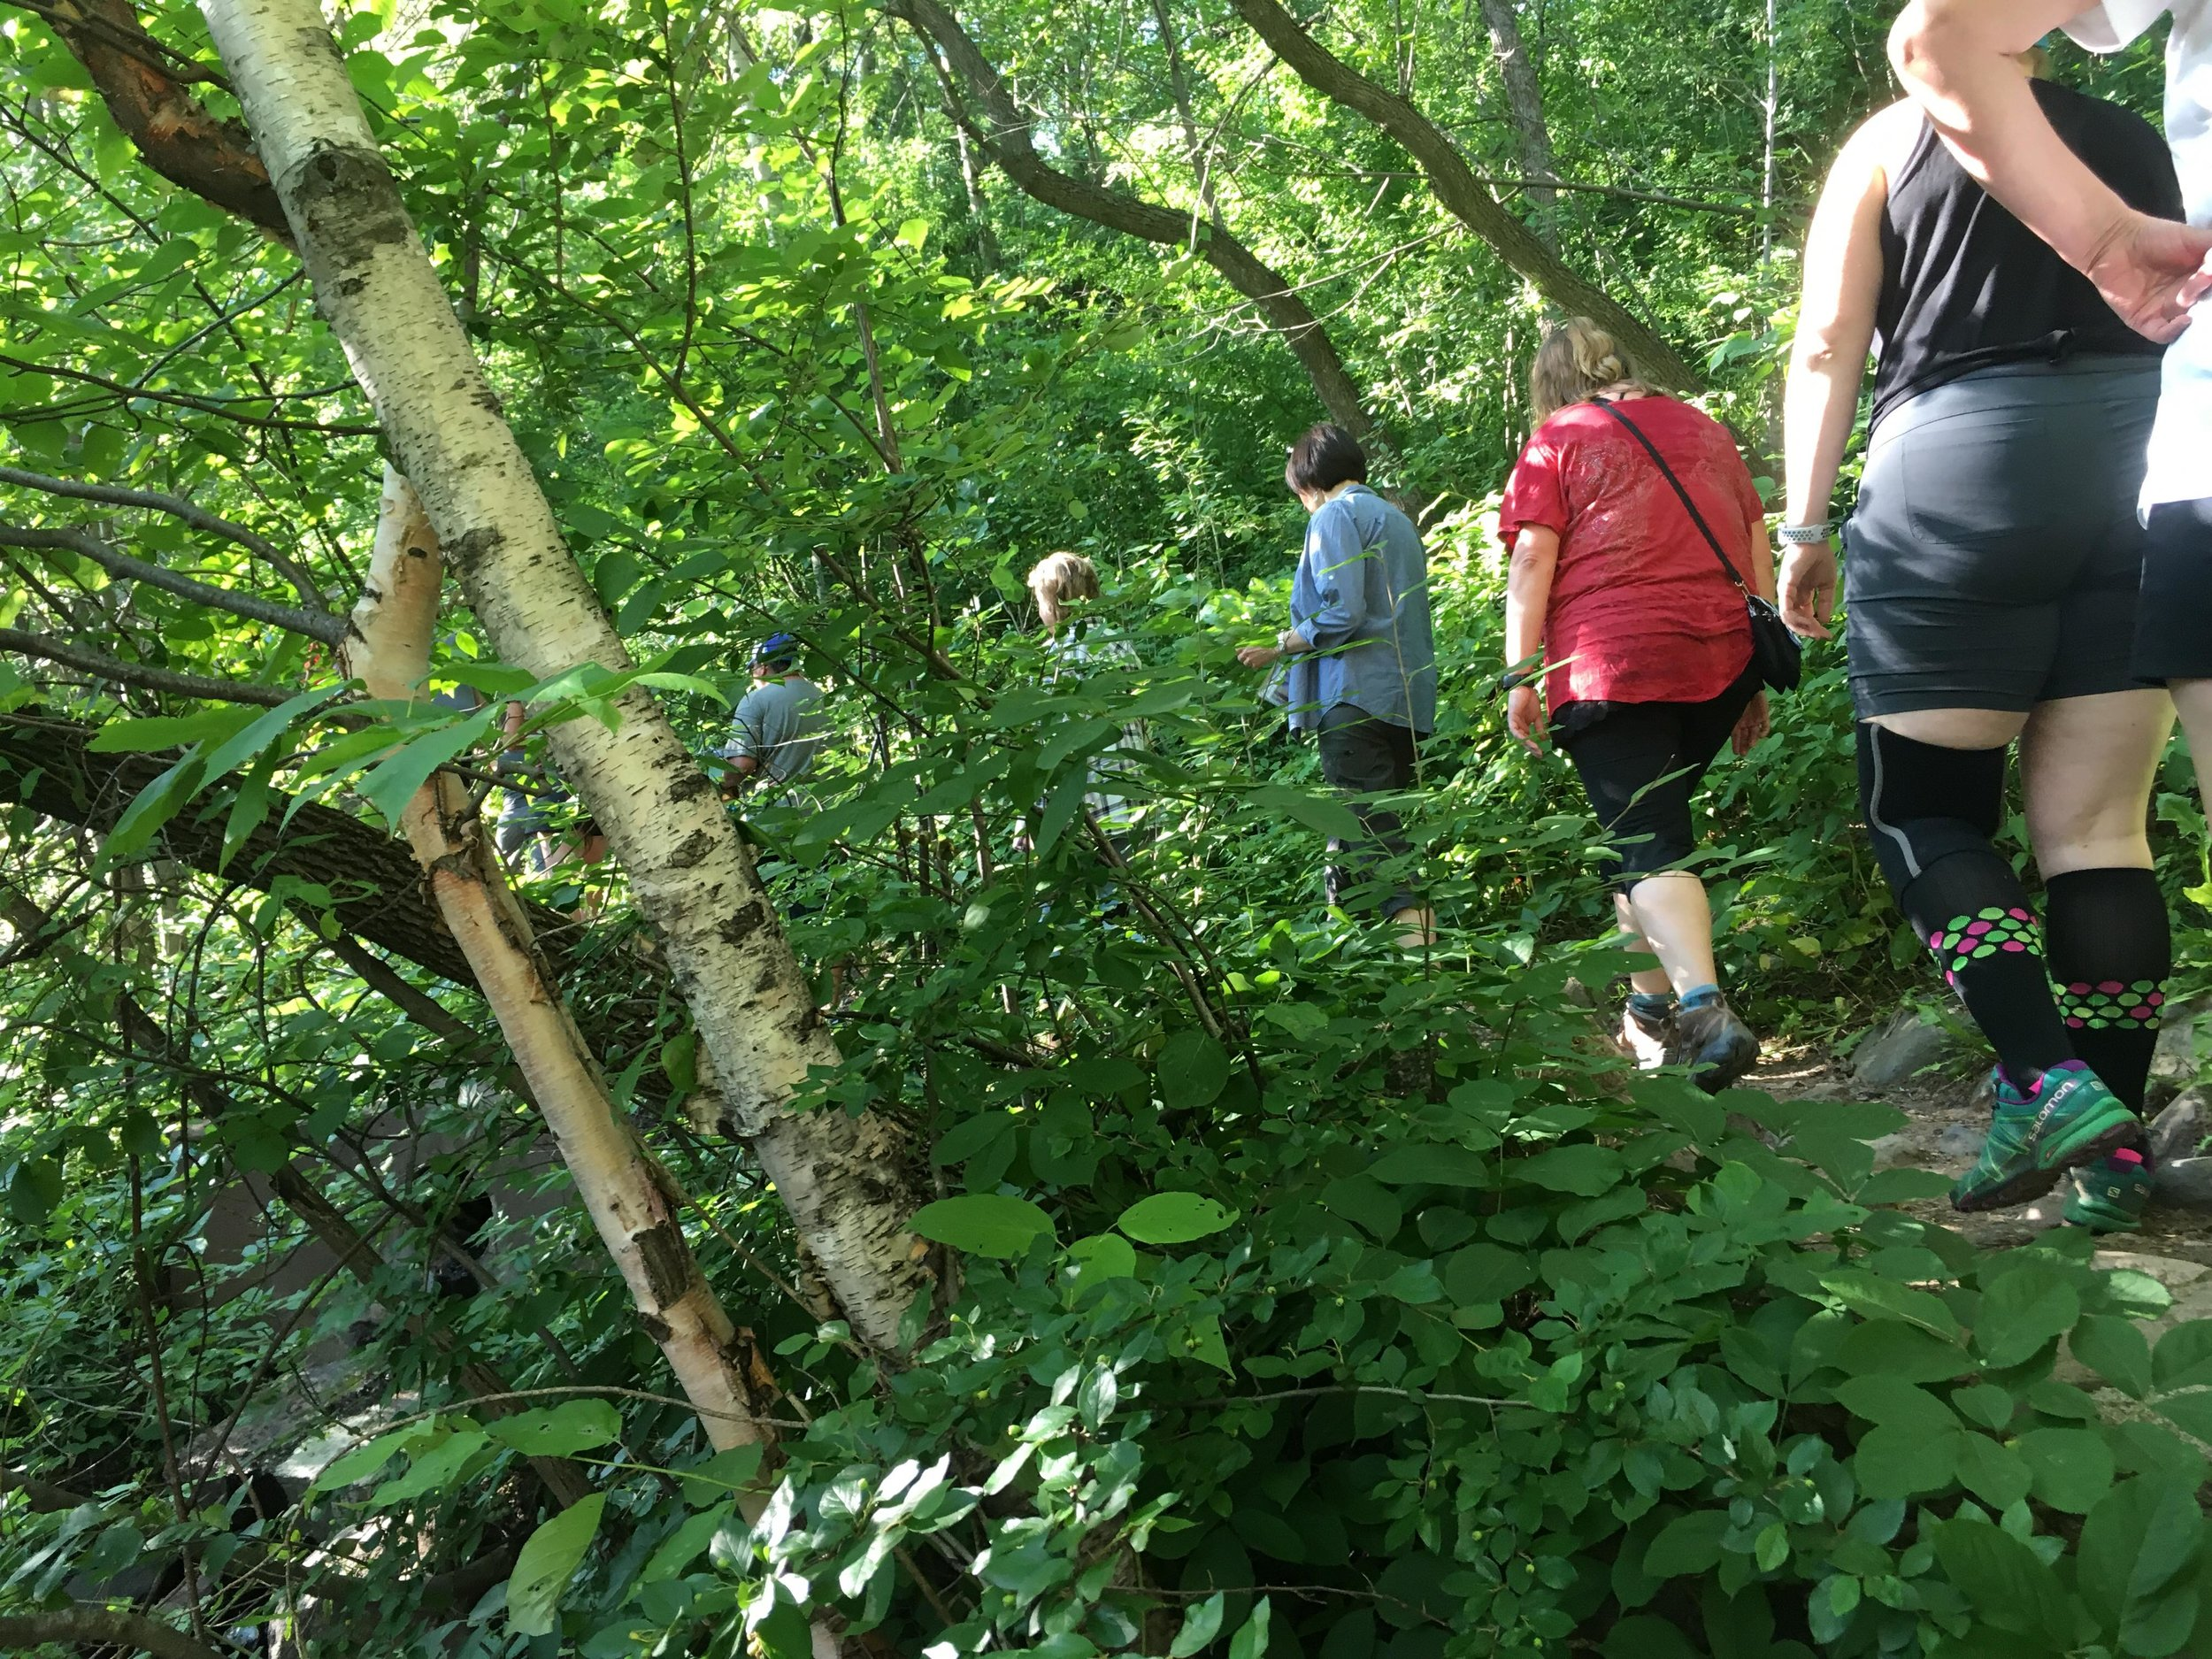 Women hiking for Women Hike Duluth's event in Lincoln Park on July 17, 2018. This program is for any woman with any hiking ability. Photo courtesy of Jessica Schoonover